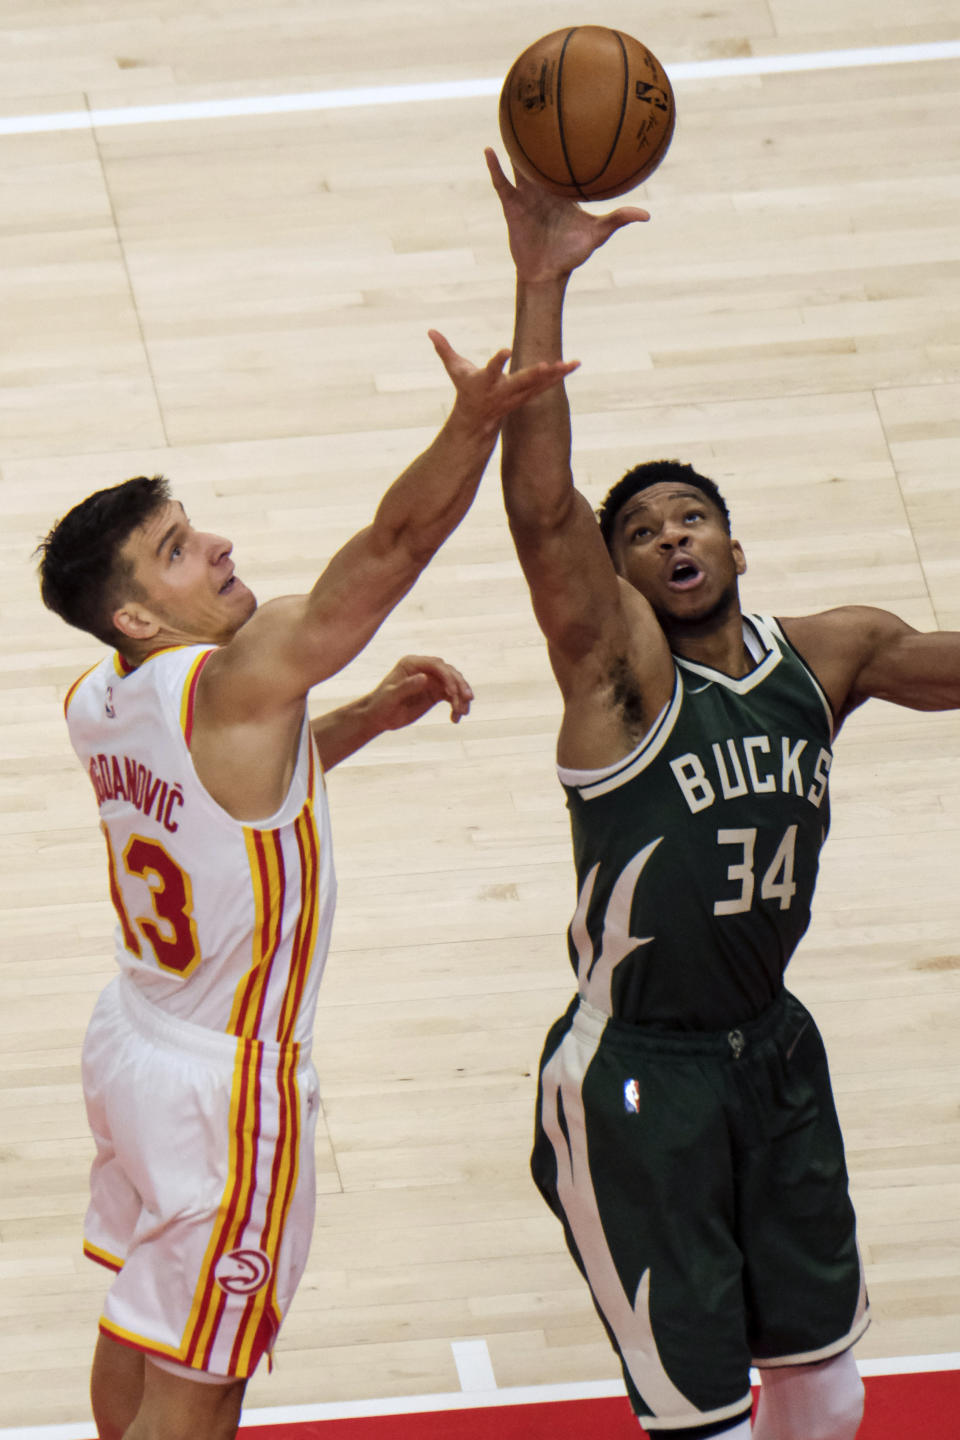 Milwaukee Bucks forward Giannis Antetokounmpo (34) knocks the rebound away from Atlanta Hawks guard Bogdan Bogdanovic (13) during the first half of an NBA basketball game on Sunday, April 25, 2021, in Atlanta. (AP Photo/Ben Gray)